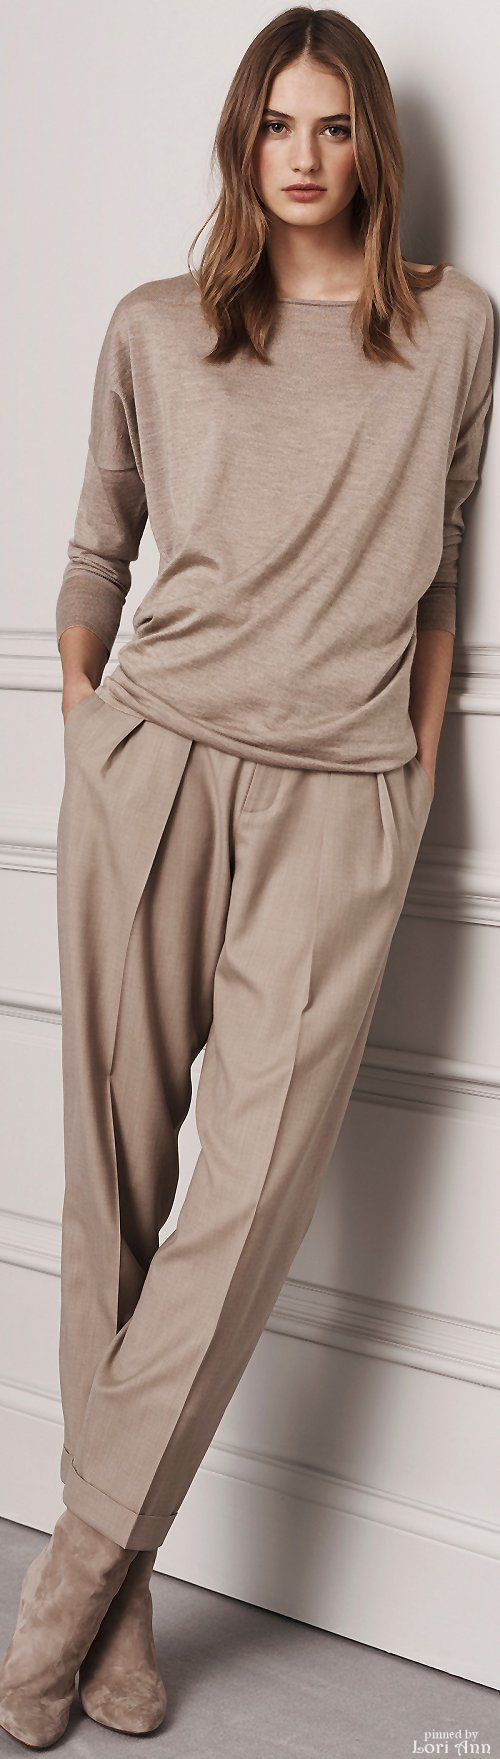 Ralph Lauren Pre-Fall 2016 I really love the taupe-mushroom color and the soft comfortable feel of this set